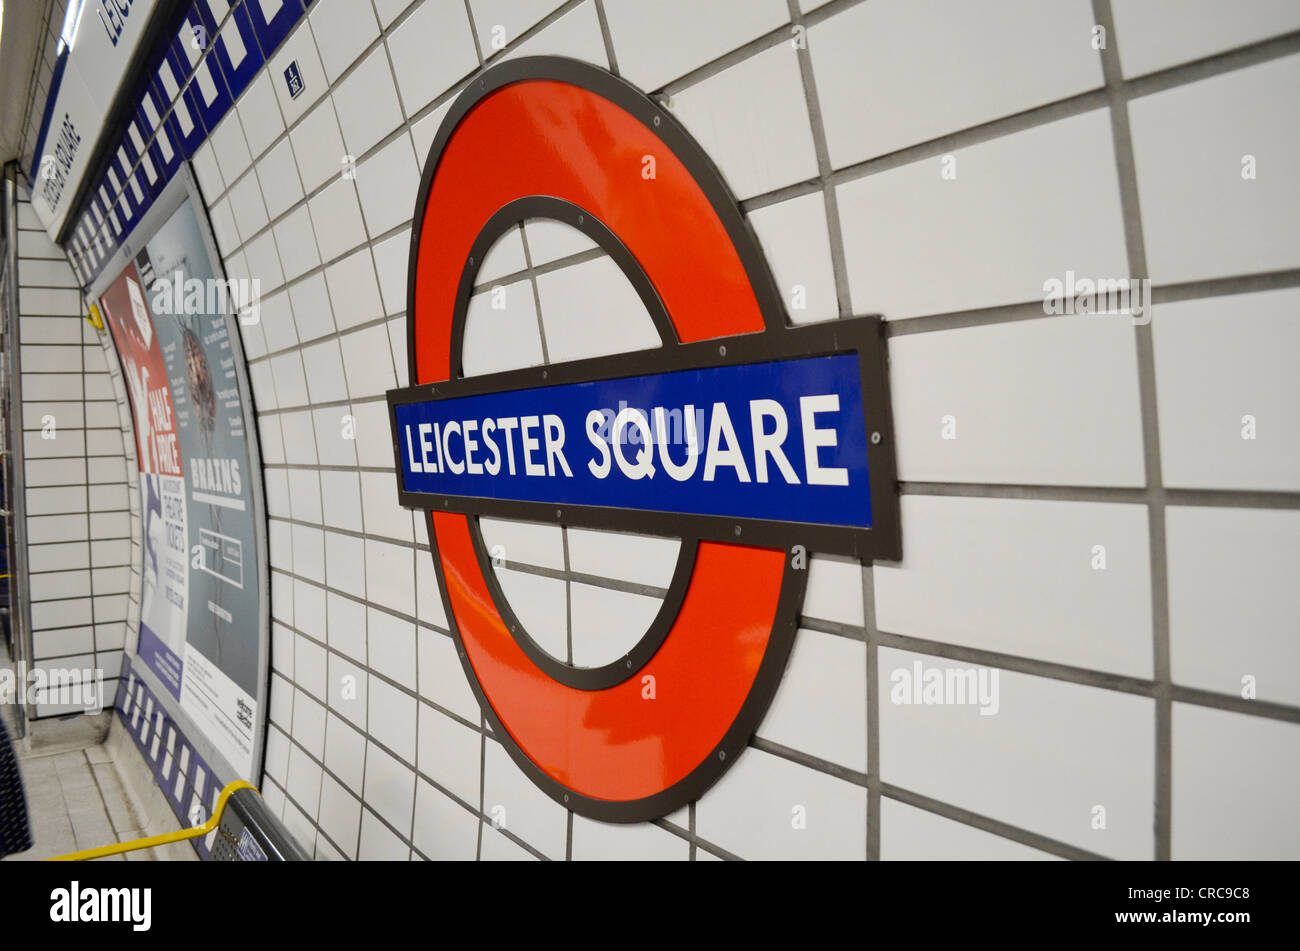 Leicester square underground station sign - Stock Image